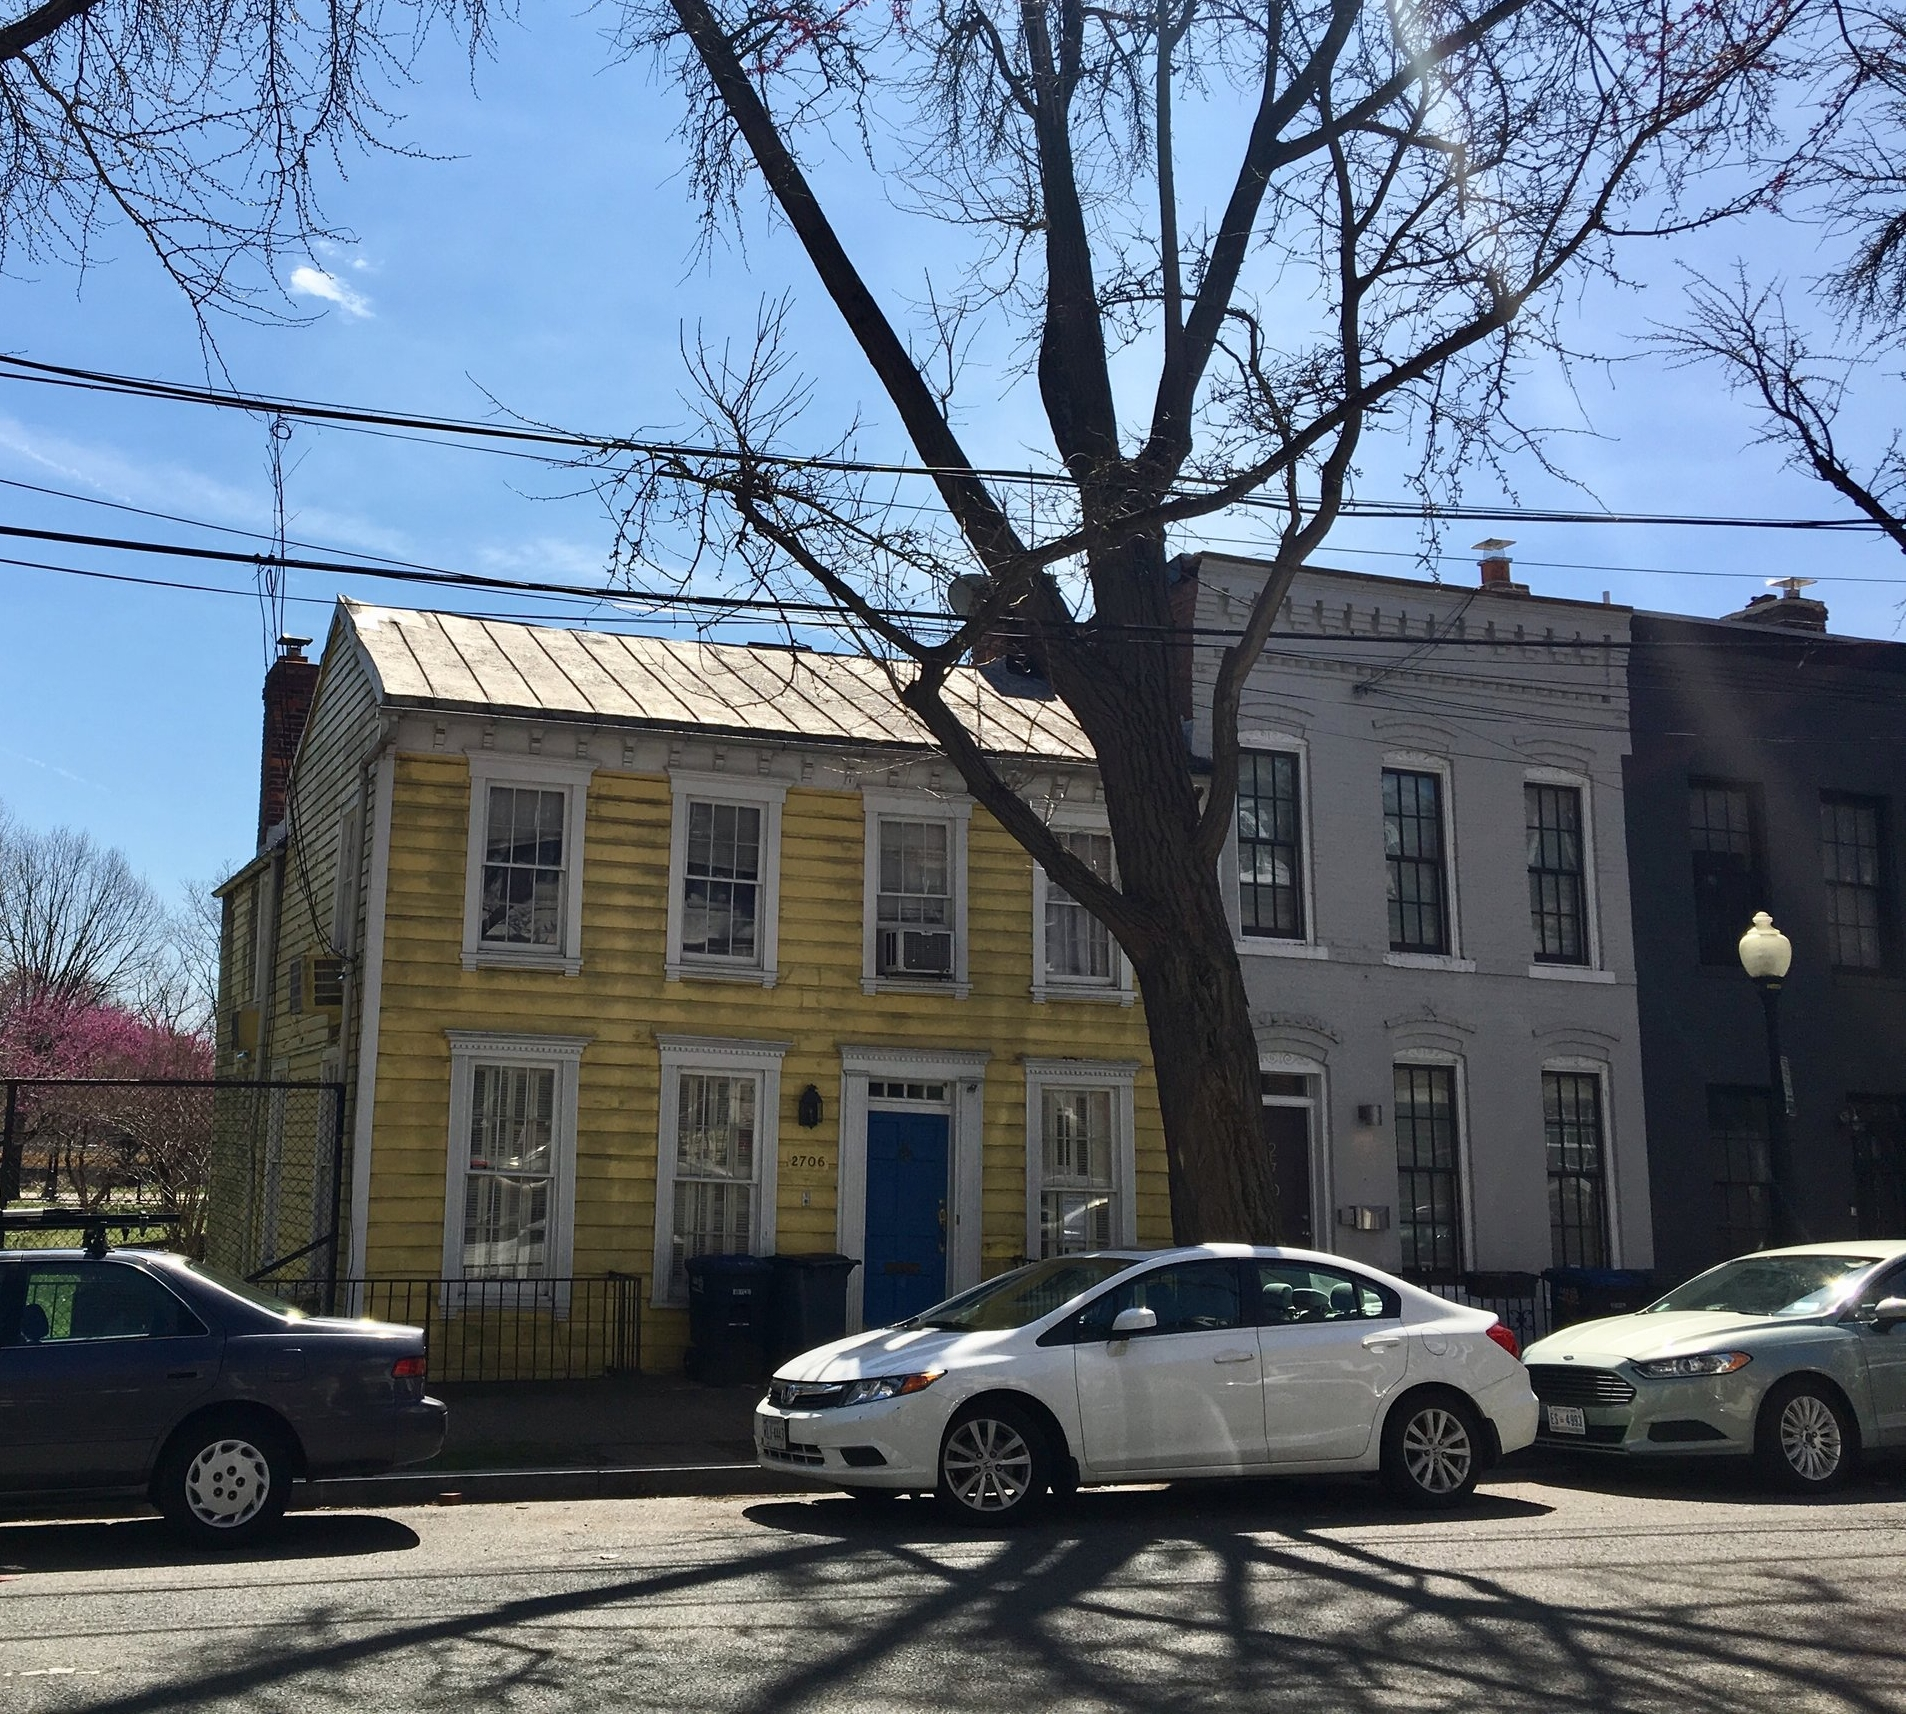 Julia Child lived in that yellow house at one point!